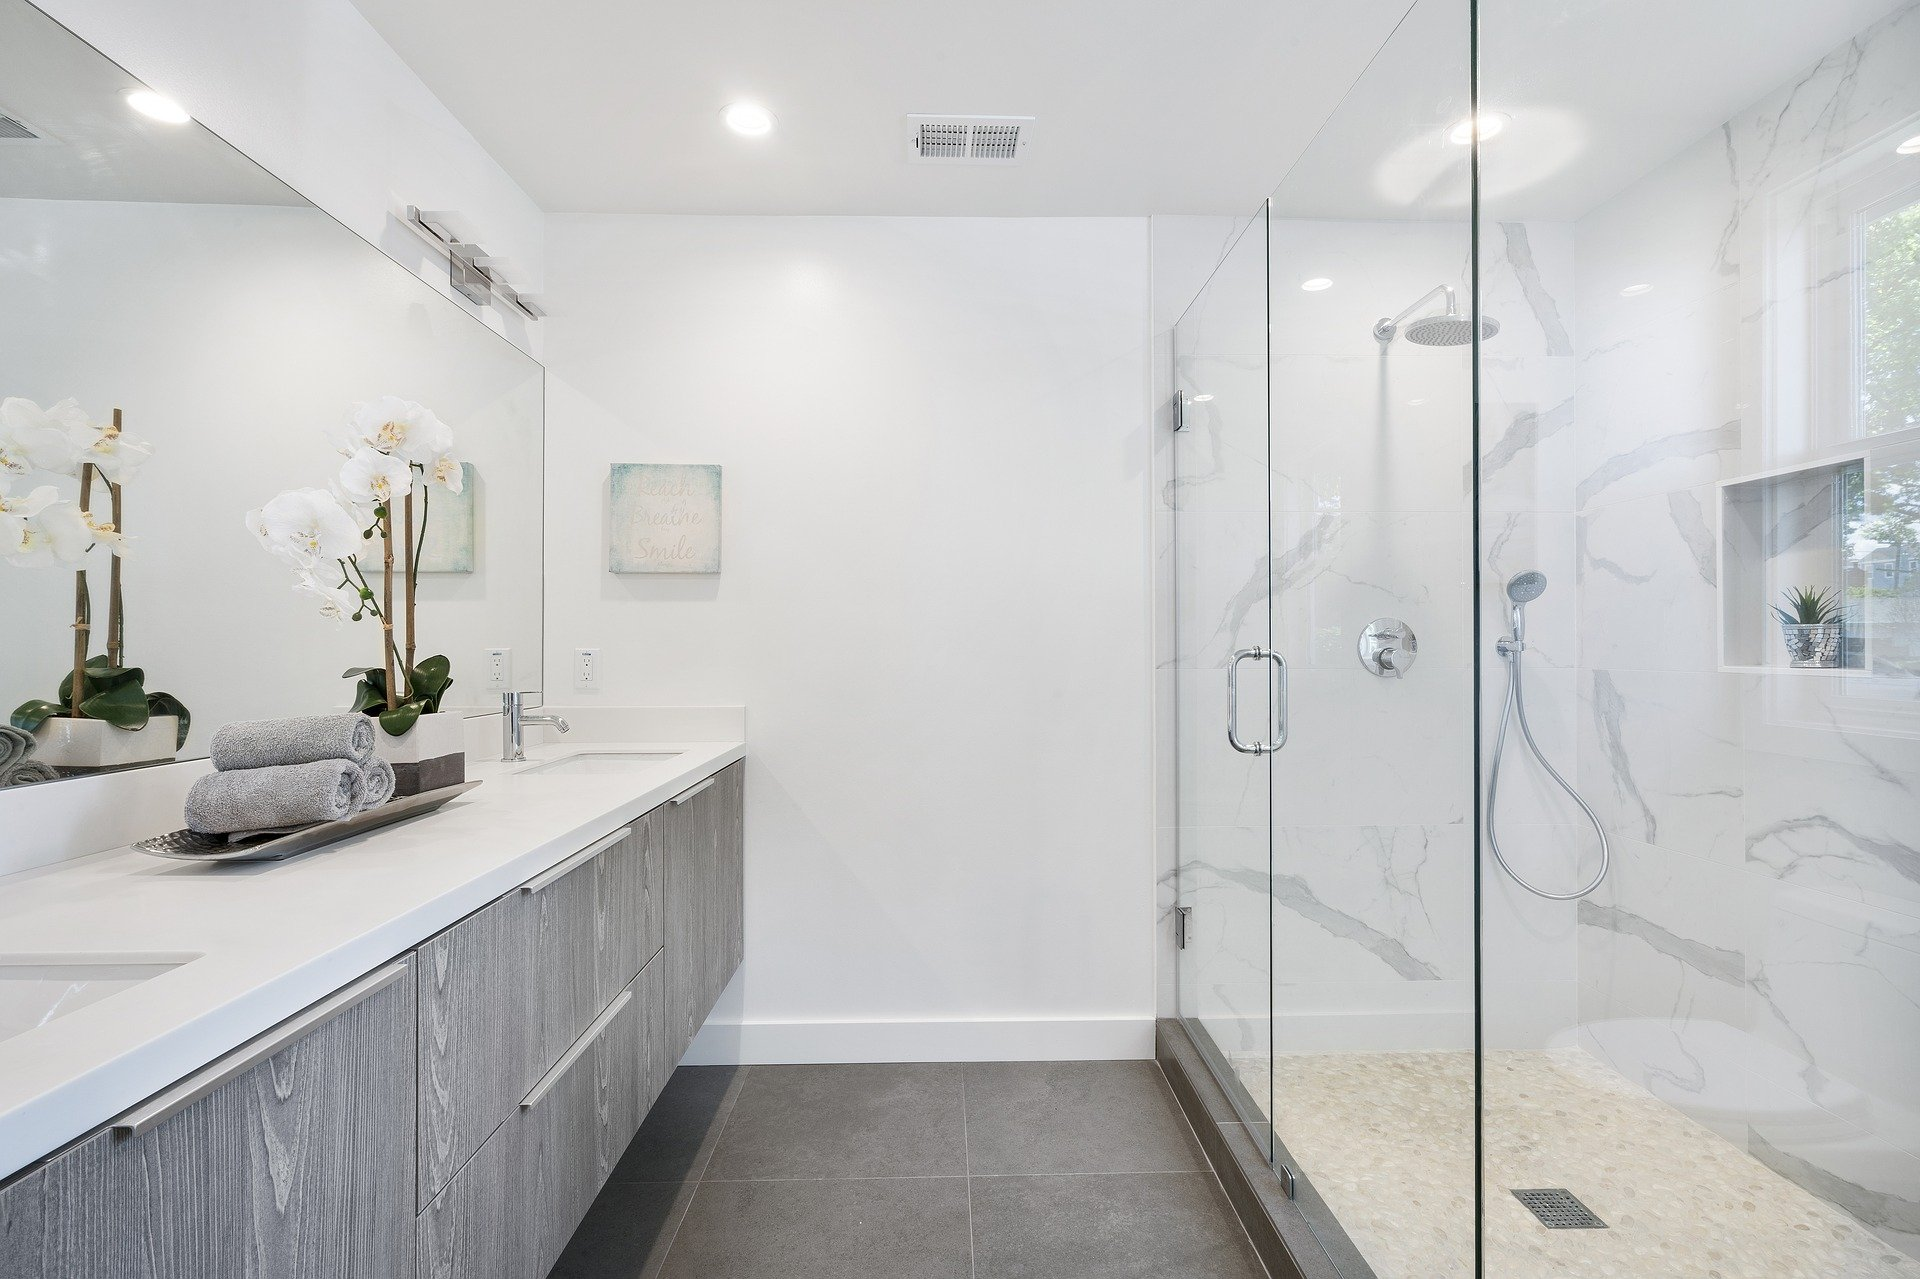 Frameless Shower Doors: Do they live up to the hype?'s featured image